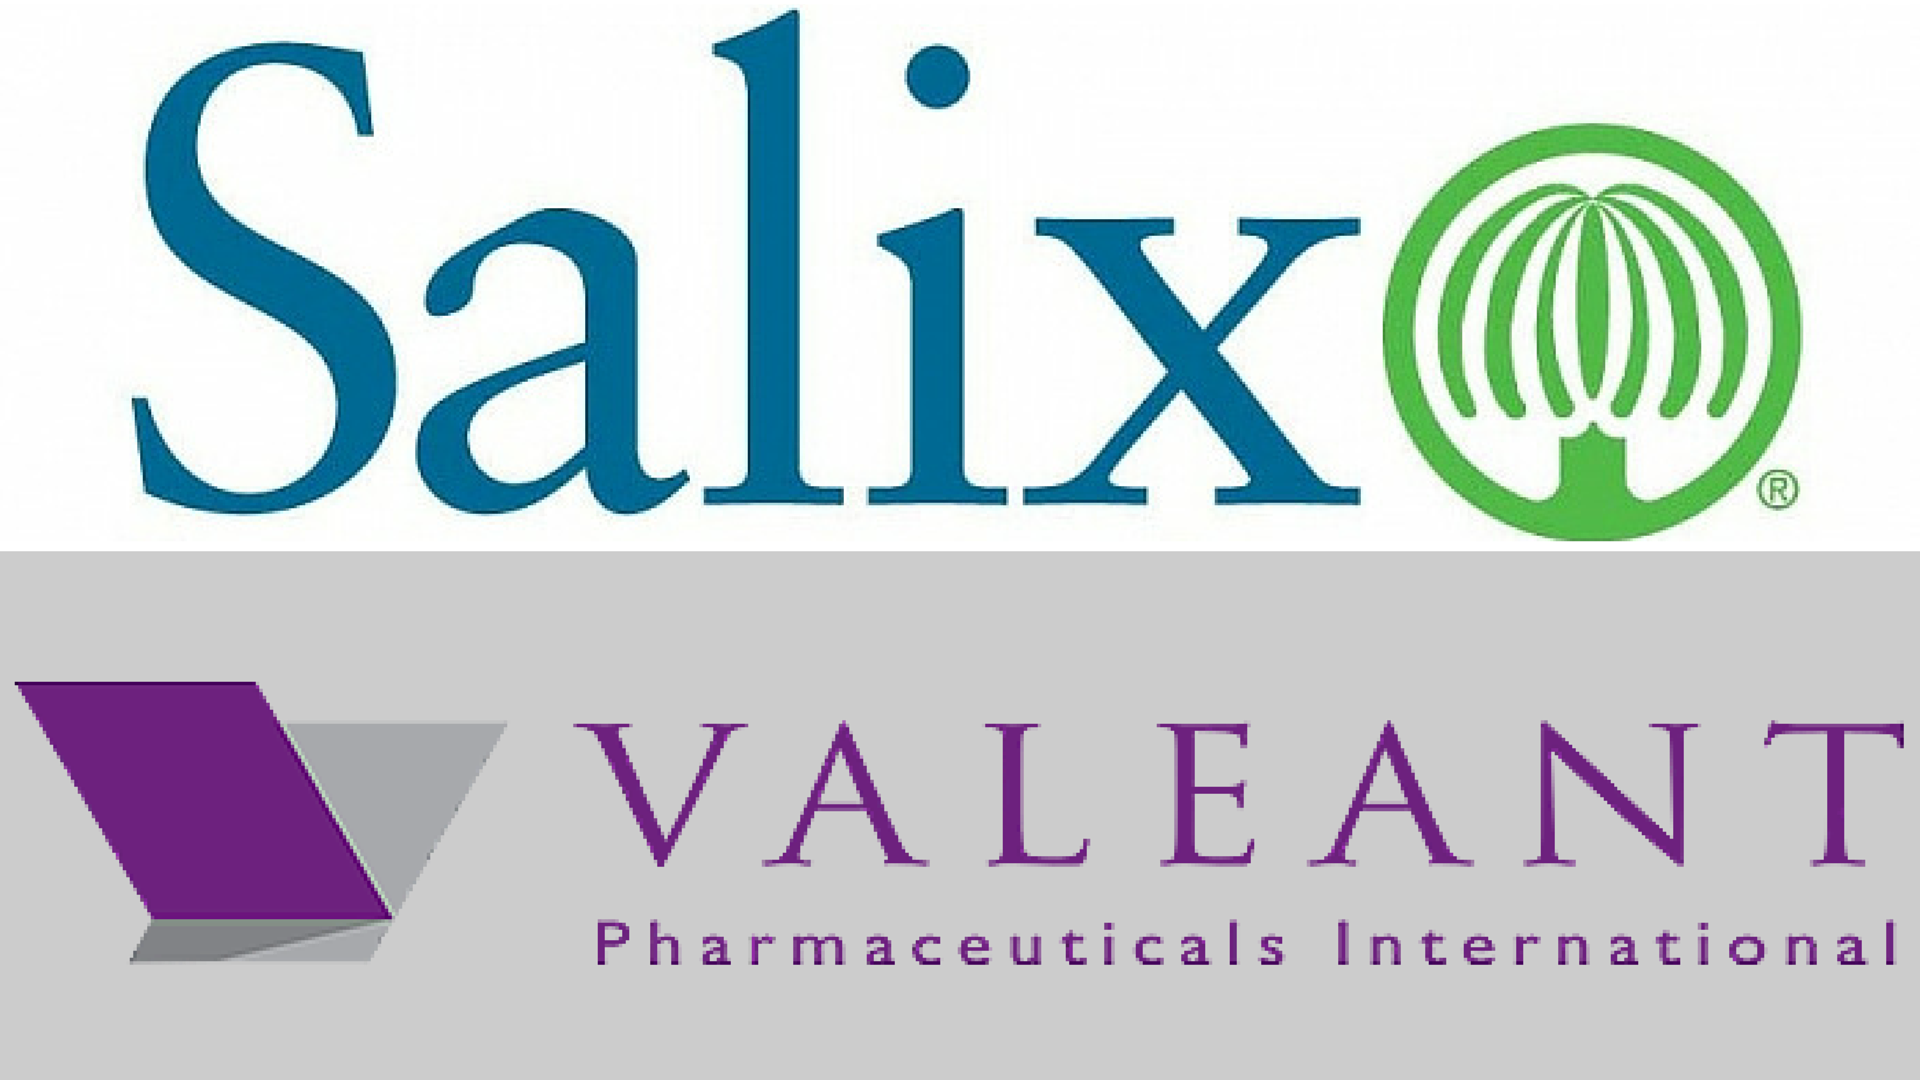 Valeant to Acquire Specialty Salix Pharma